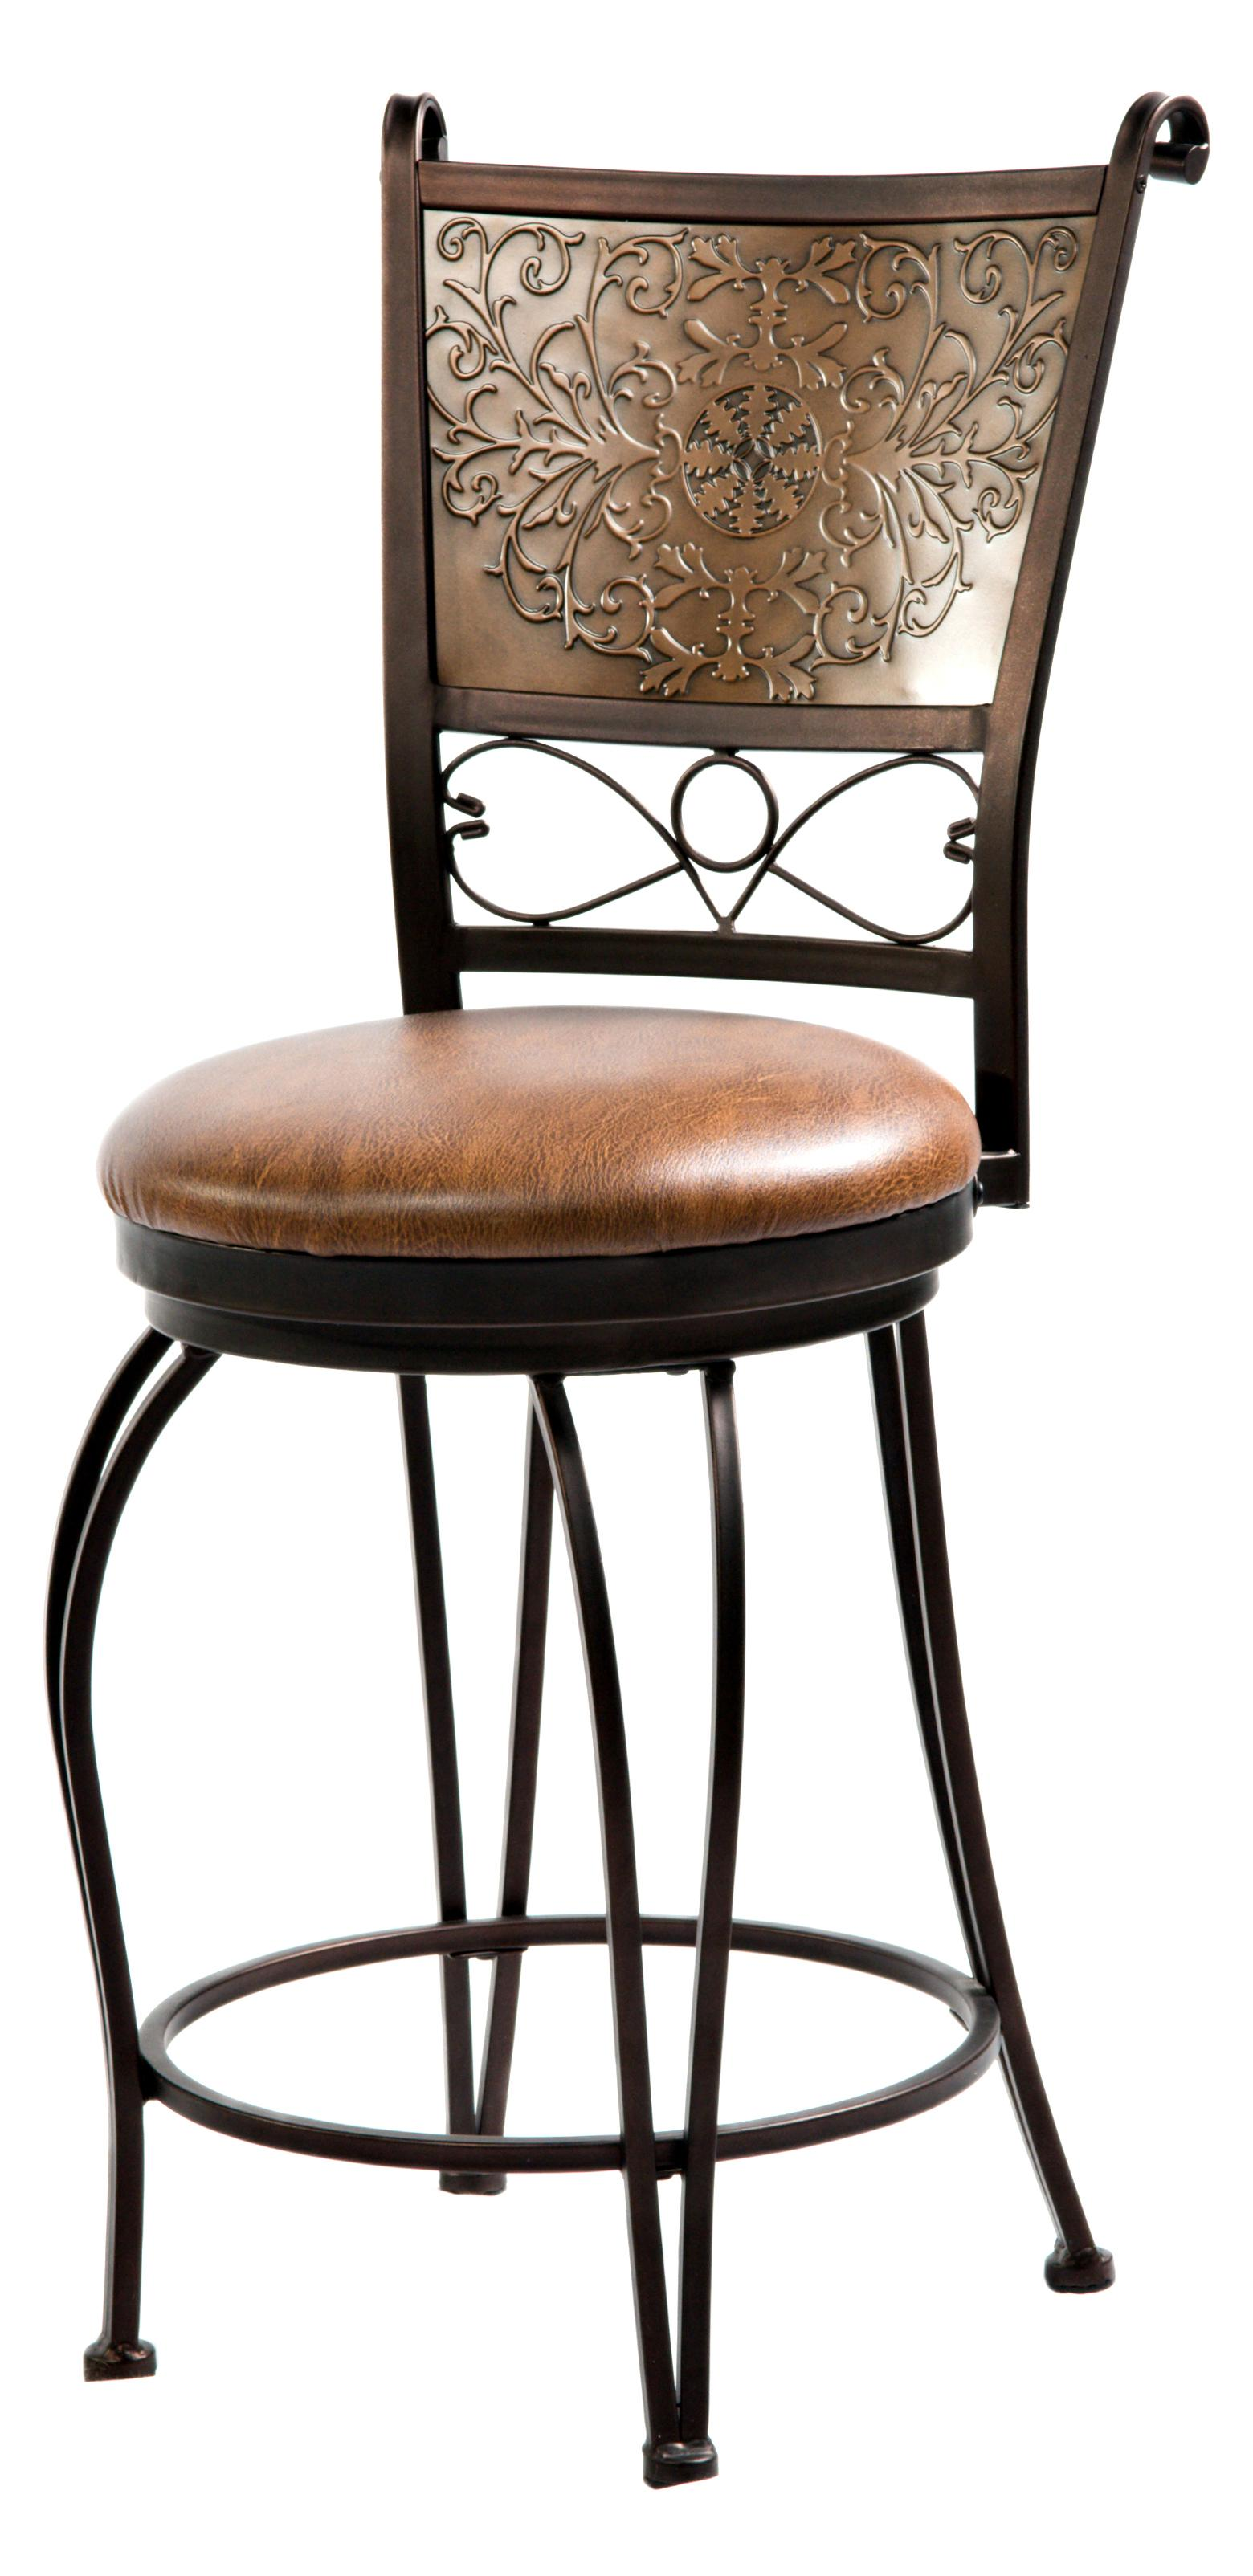 Powell Bar Stools Tables 222 918 24 Inch Bronze With Muted Copper Stamped Back Bar Stool